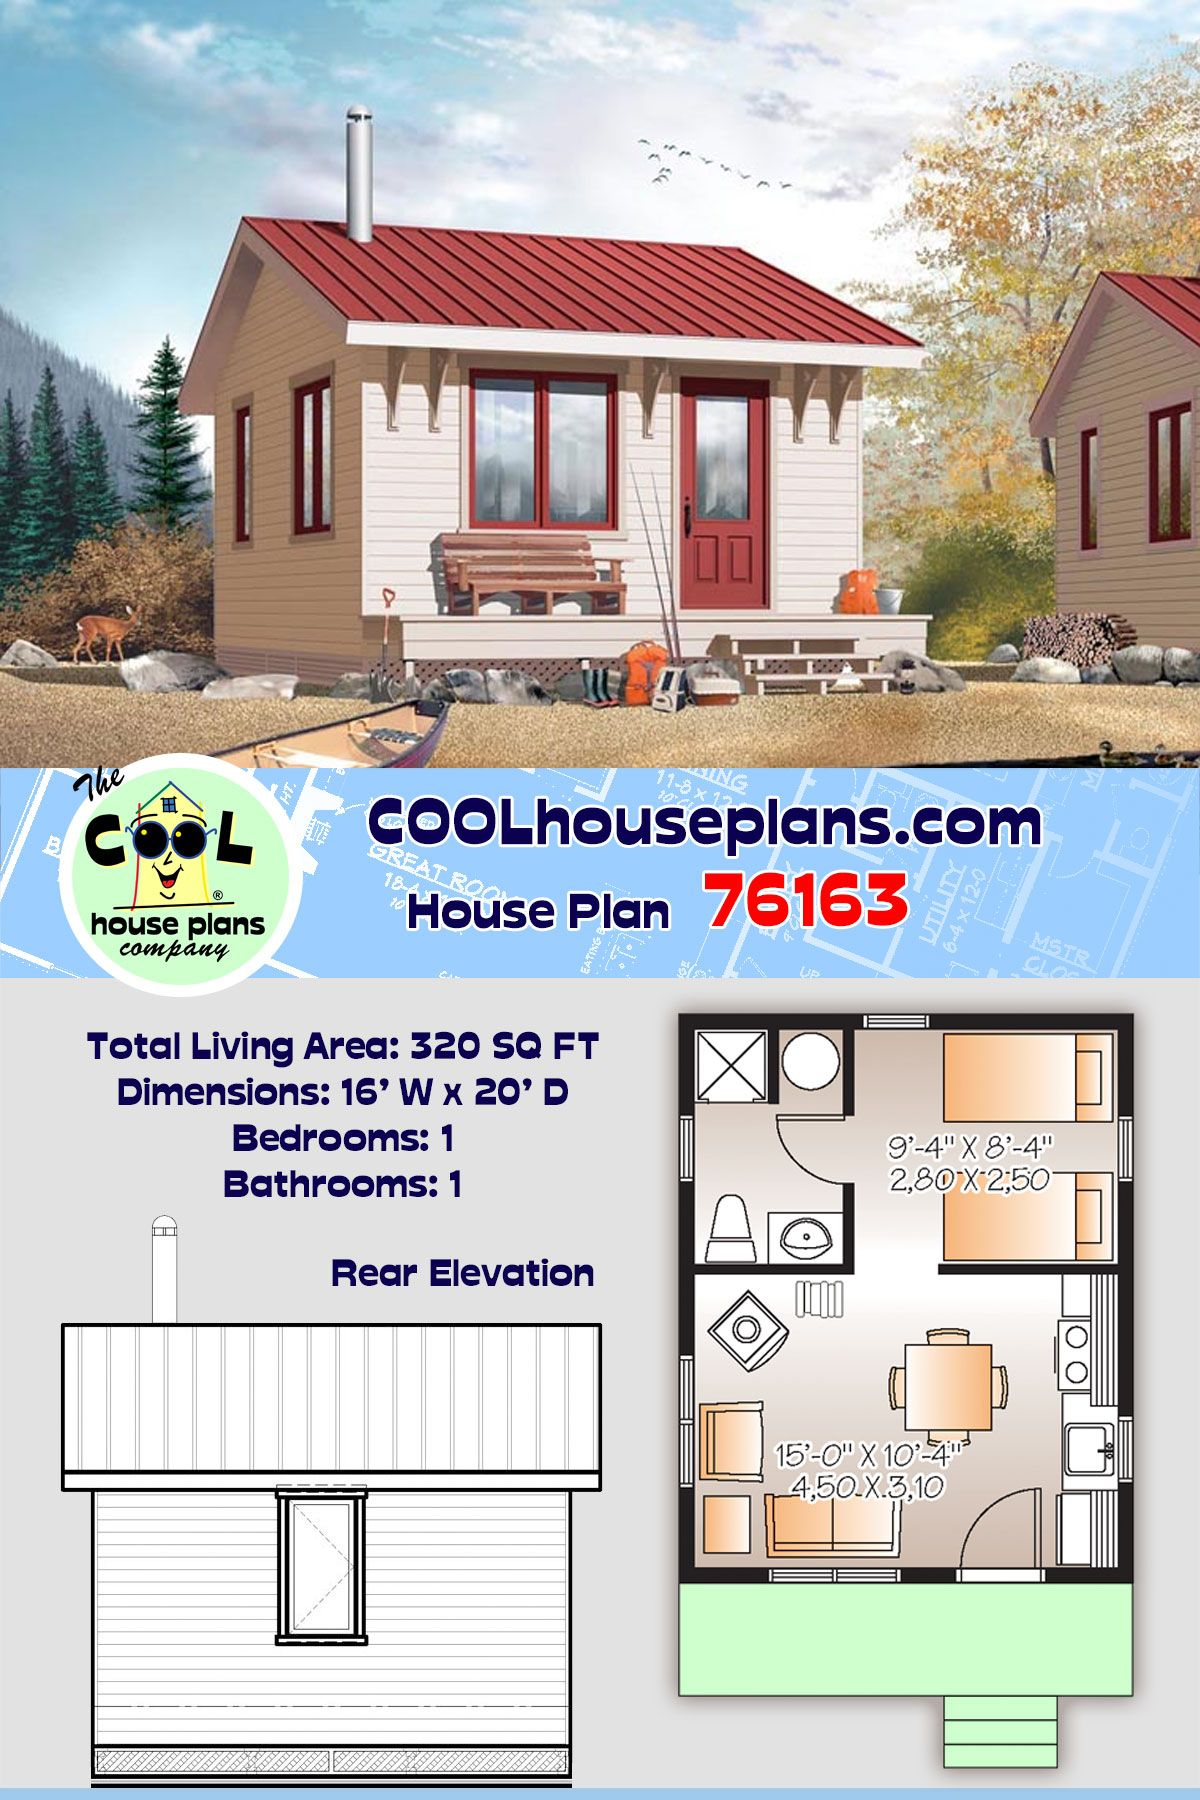 Cabin Style House Plan 76163 With 1 Bed 1 Bath House Plans Small Cabin Plans Tiny House Floor Plans